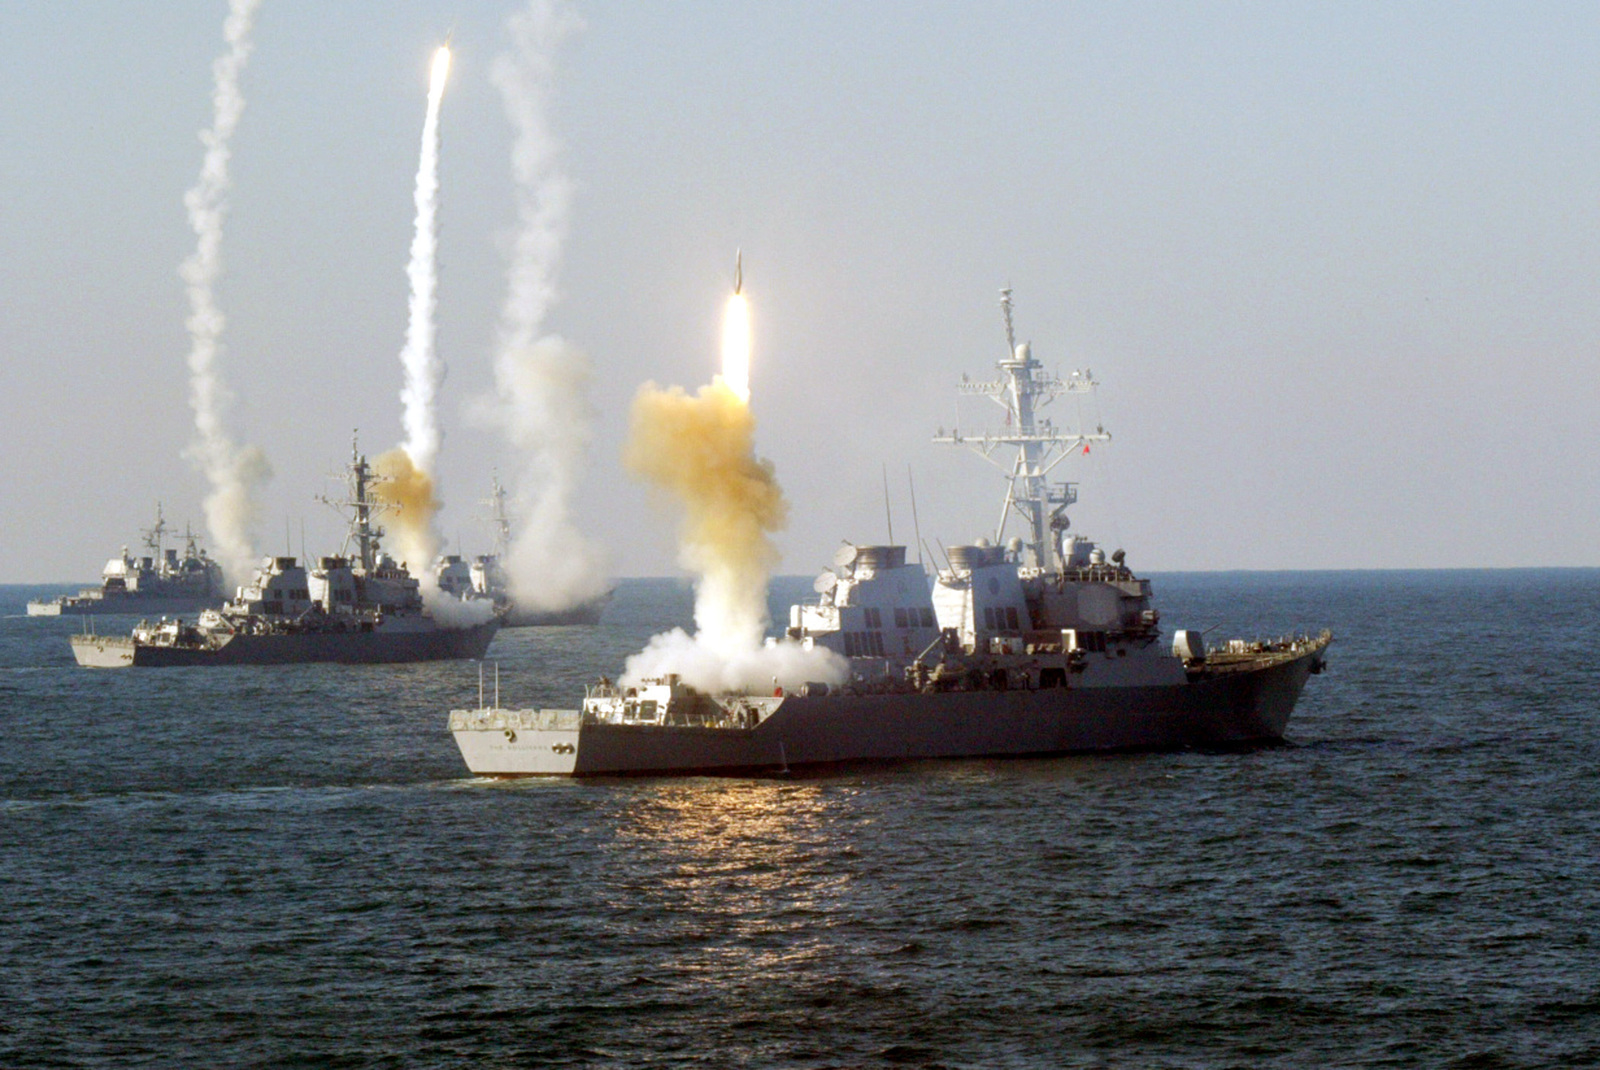 US Navy (USN) Ships launch a coordinated volley of SM-2MR Block II Standard missiles, during a Vandel Exercise (VANDALEX), designed to intercept hostile missiles with ship based missiles during an attack. Remote-controlled drones were used to simulate the hostile missiles. Pictured foreground-to-background are the USN ARLEIGH BURKE CLASS: (Flight I) Guided Missile Destroyer (Aegis), USS THE SULLIVANS (DDG 68), the USS CARNEY (DDG 64), the USN ARLEIGH BURKE CLASS: (Flight IIA) Guided Missile Destroyer (Aegis), USS ROOSEVELT (DDG 80), and the USN TICONDEROGA CLASS: Guided Missile Cruiser (Aegis) USS HUE CITY (CG 66)